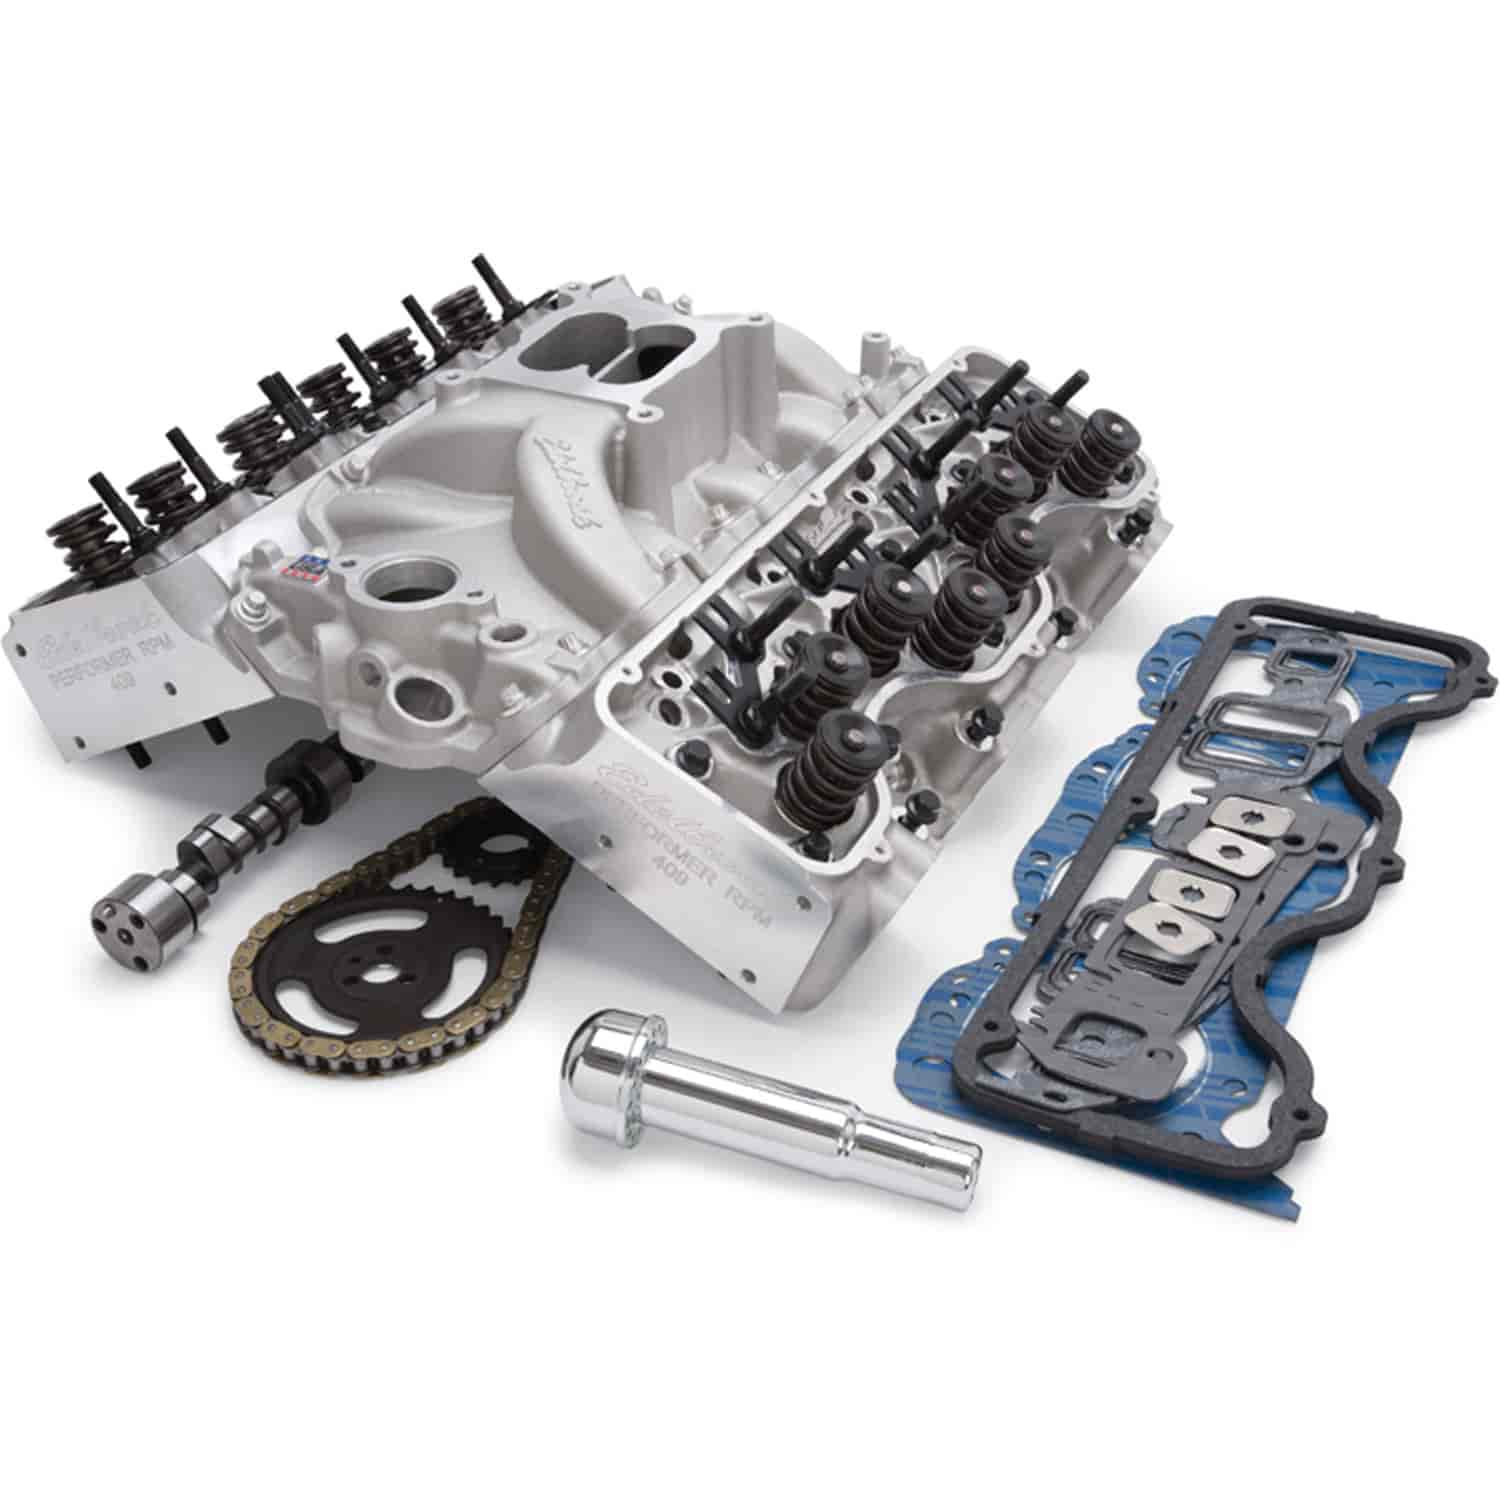 Edelbrock RPM Power Package Top End Kit for 1961-1965 Big Block Chevy  W-Series 348/409